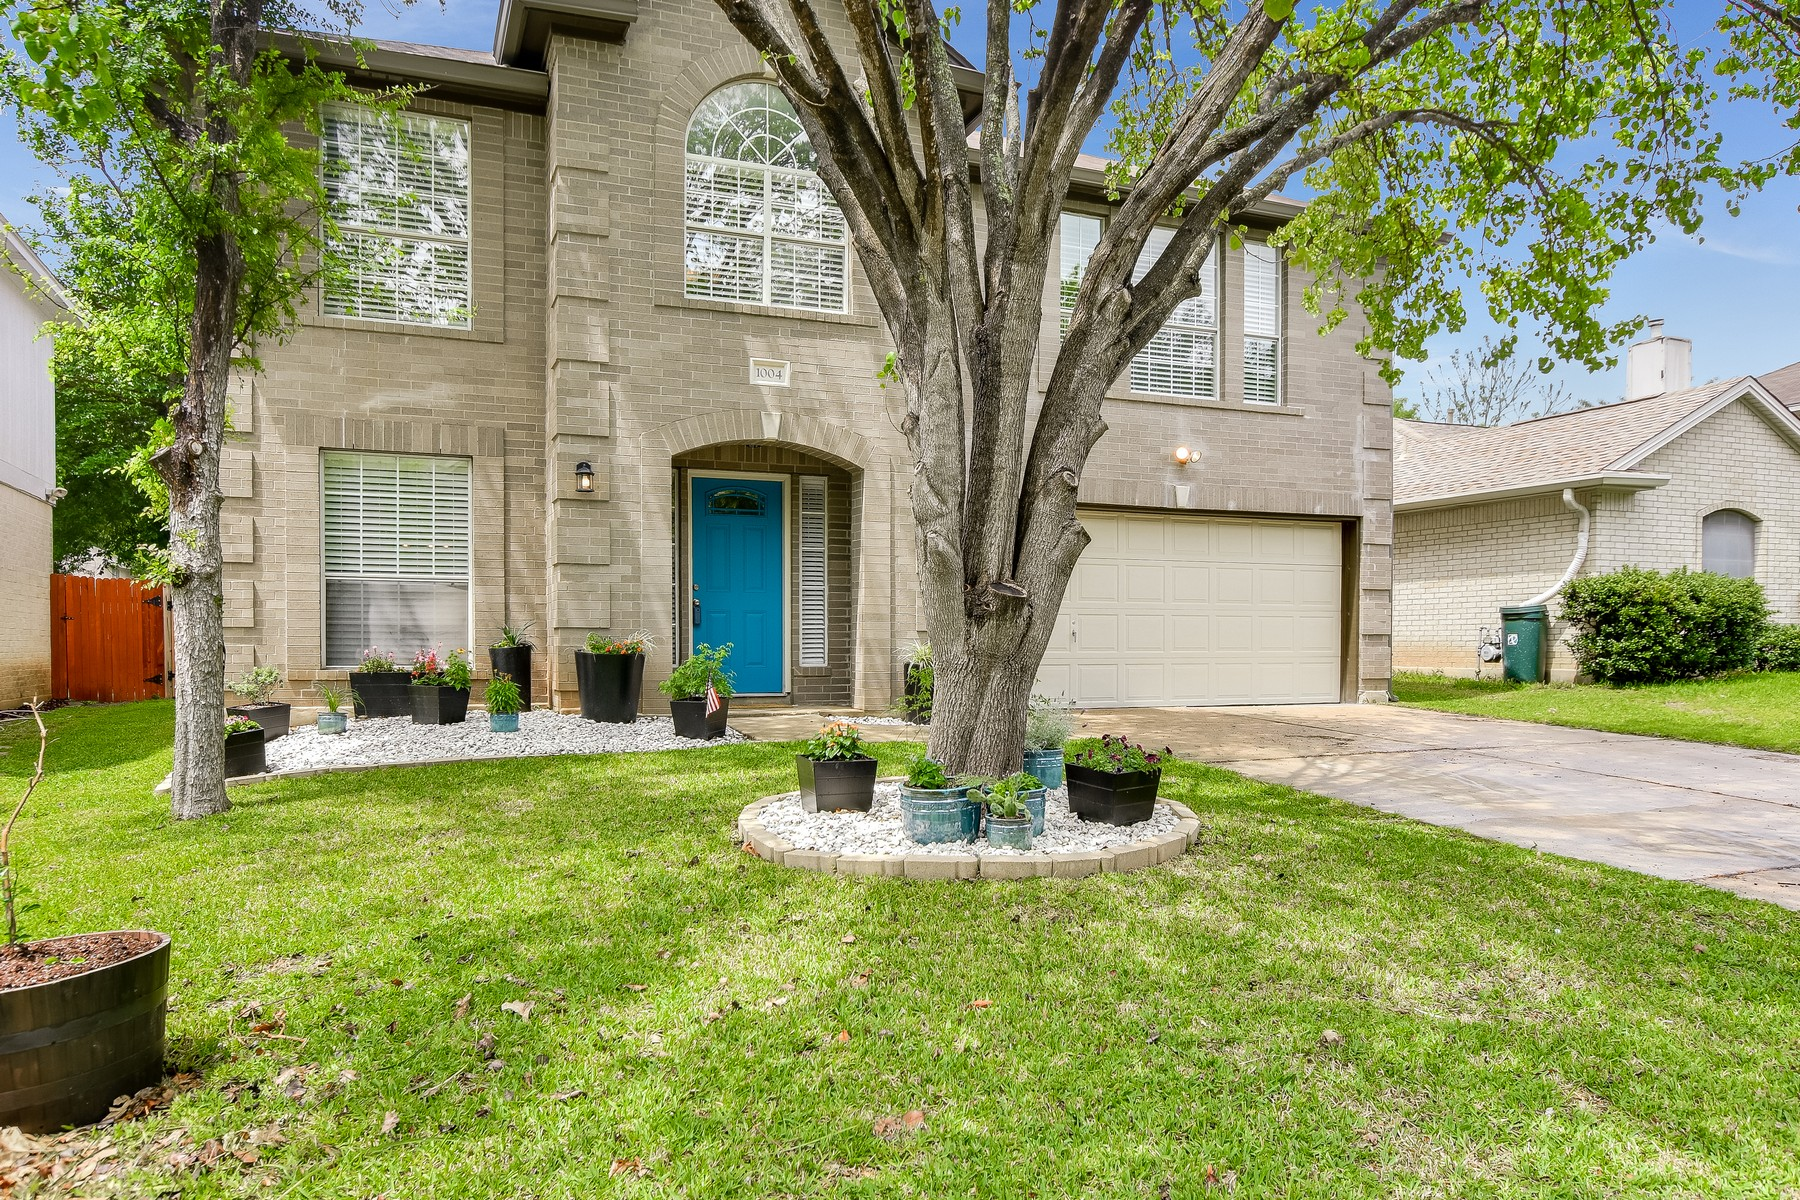 Single Family Home for Sale at Impeccable Pflugerville Home 1004 Acanthus St Pflugerville, Texas 78660 United States